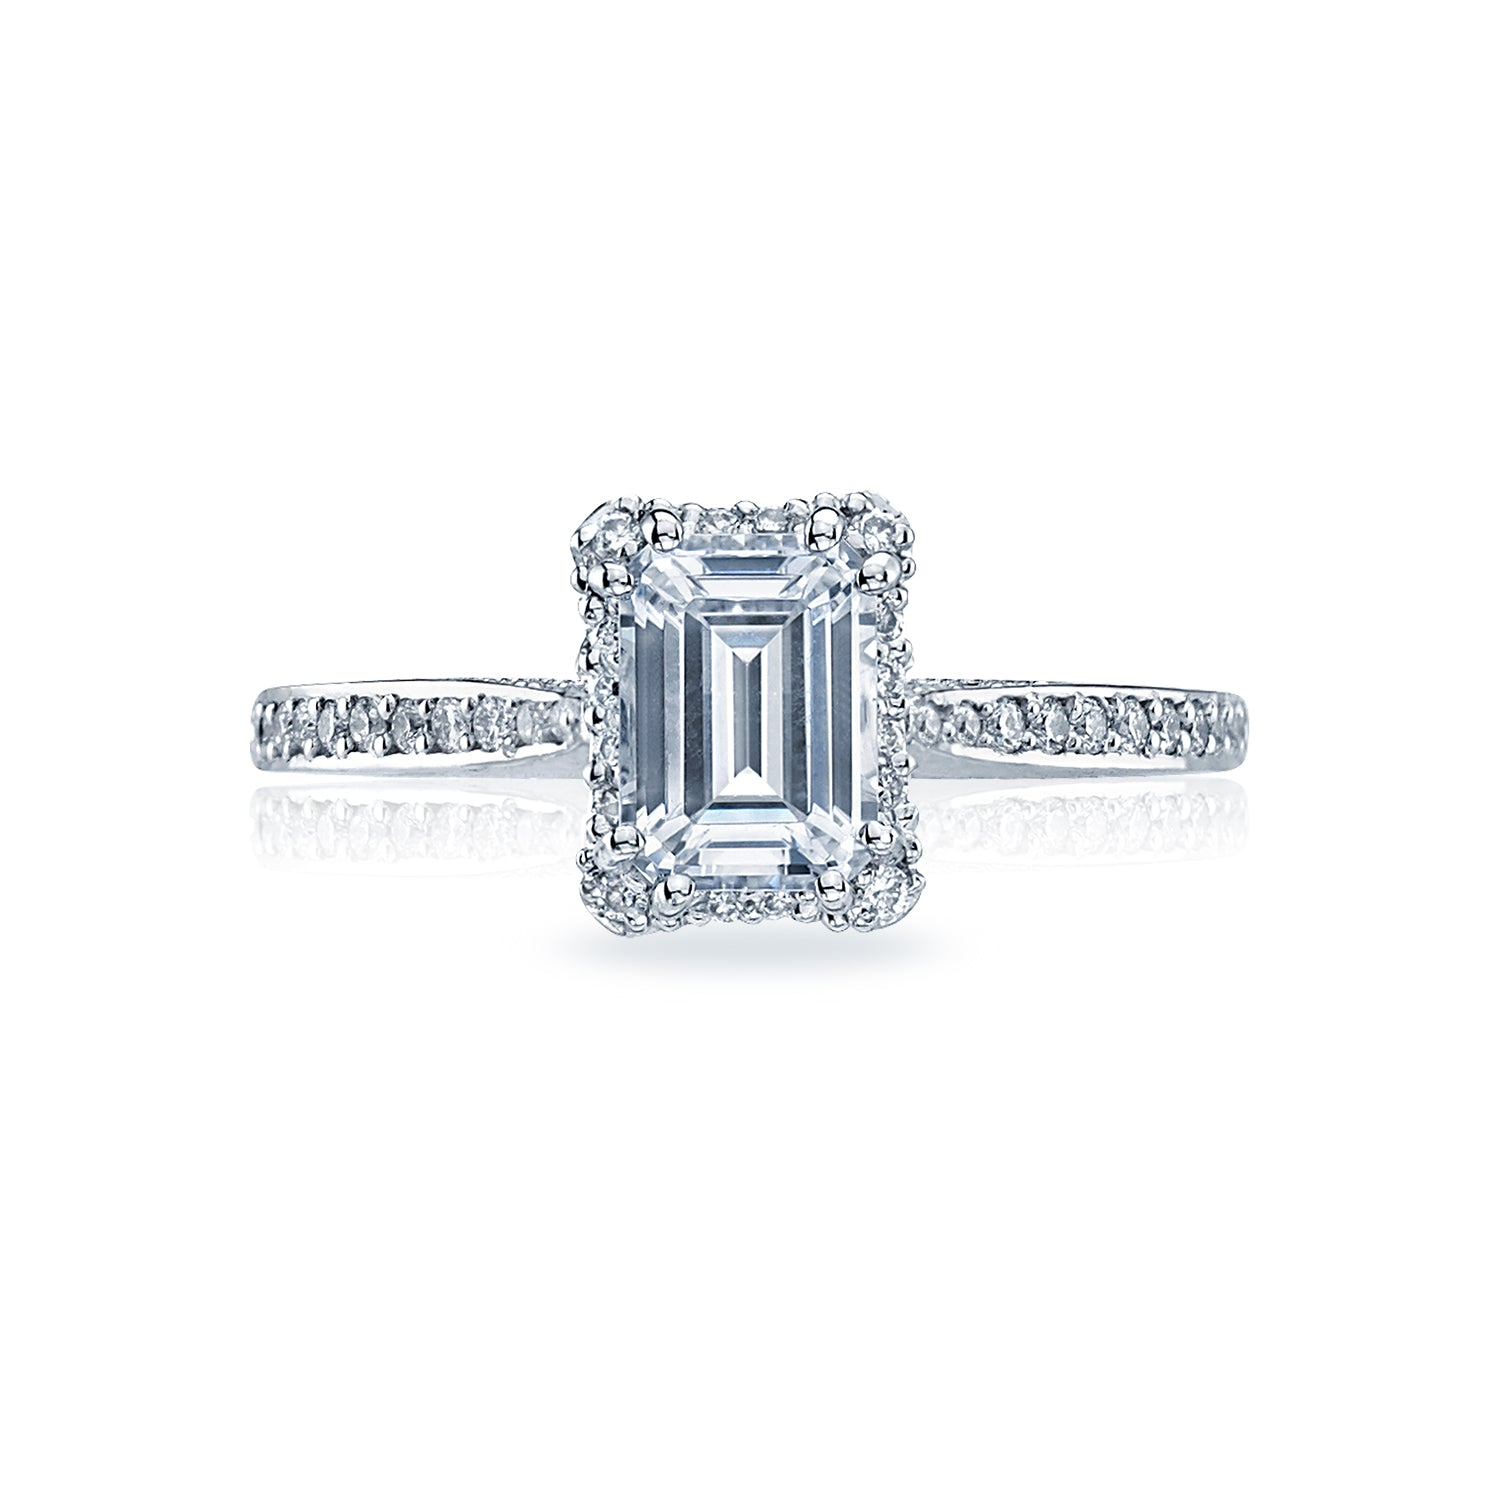 Tacori 'Dantela' 8x6mm Emerald Halo Engagement Ring